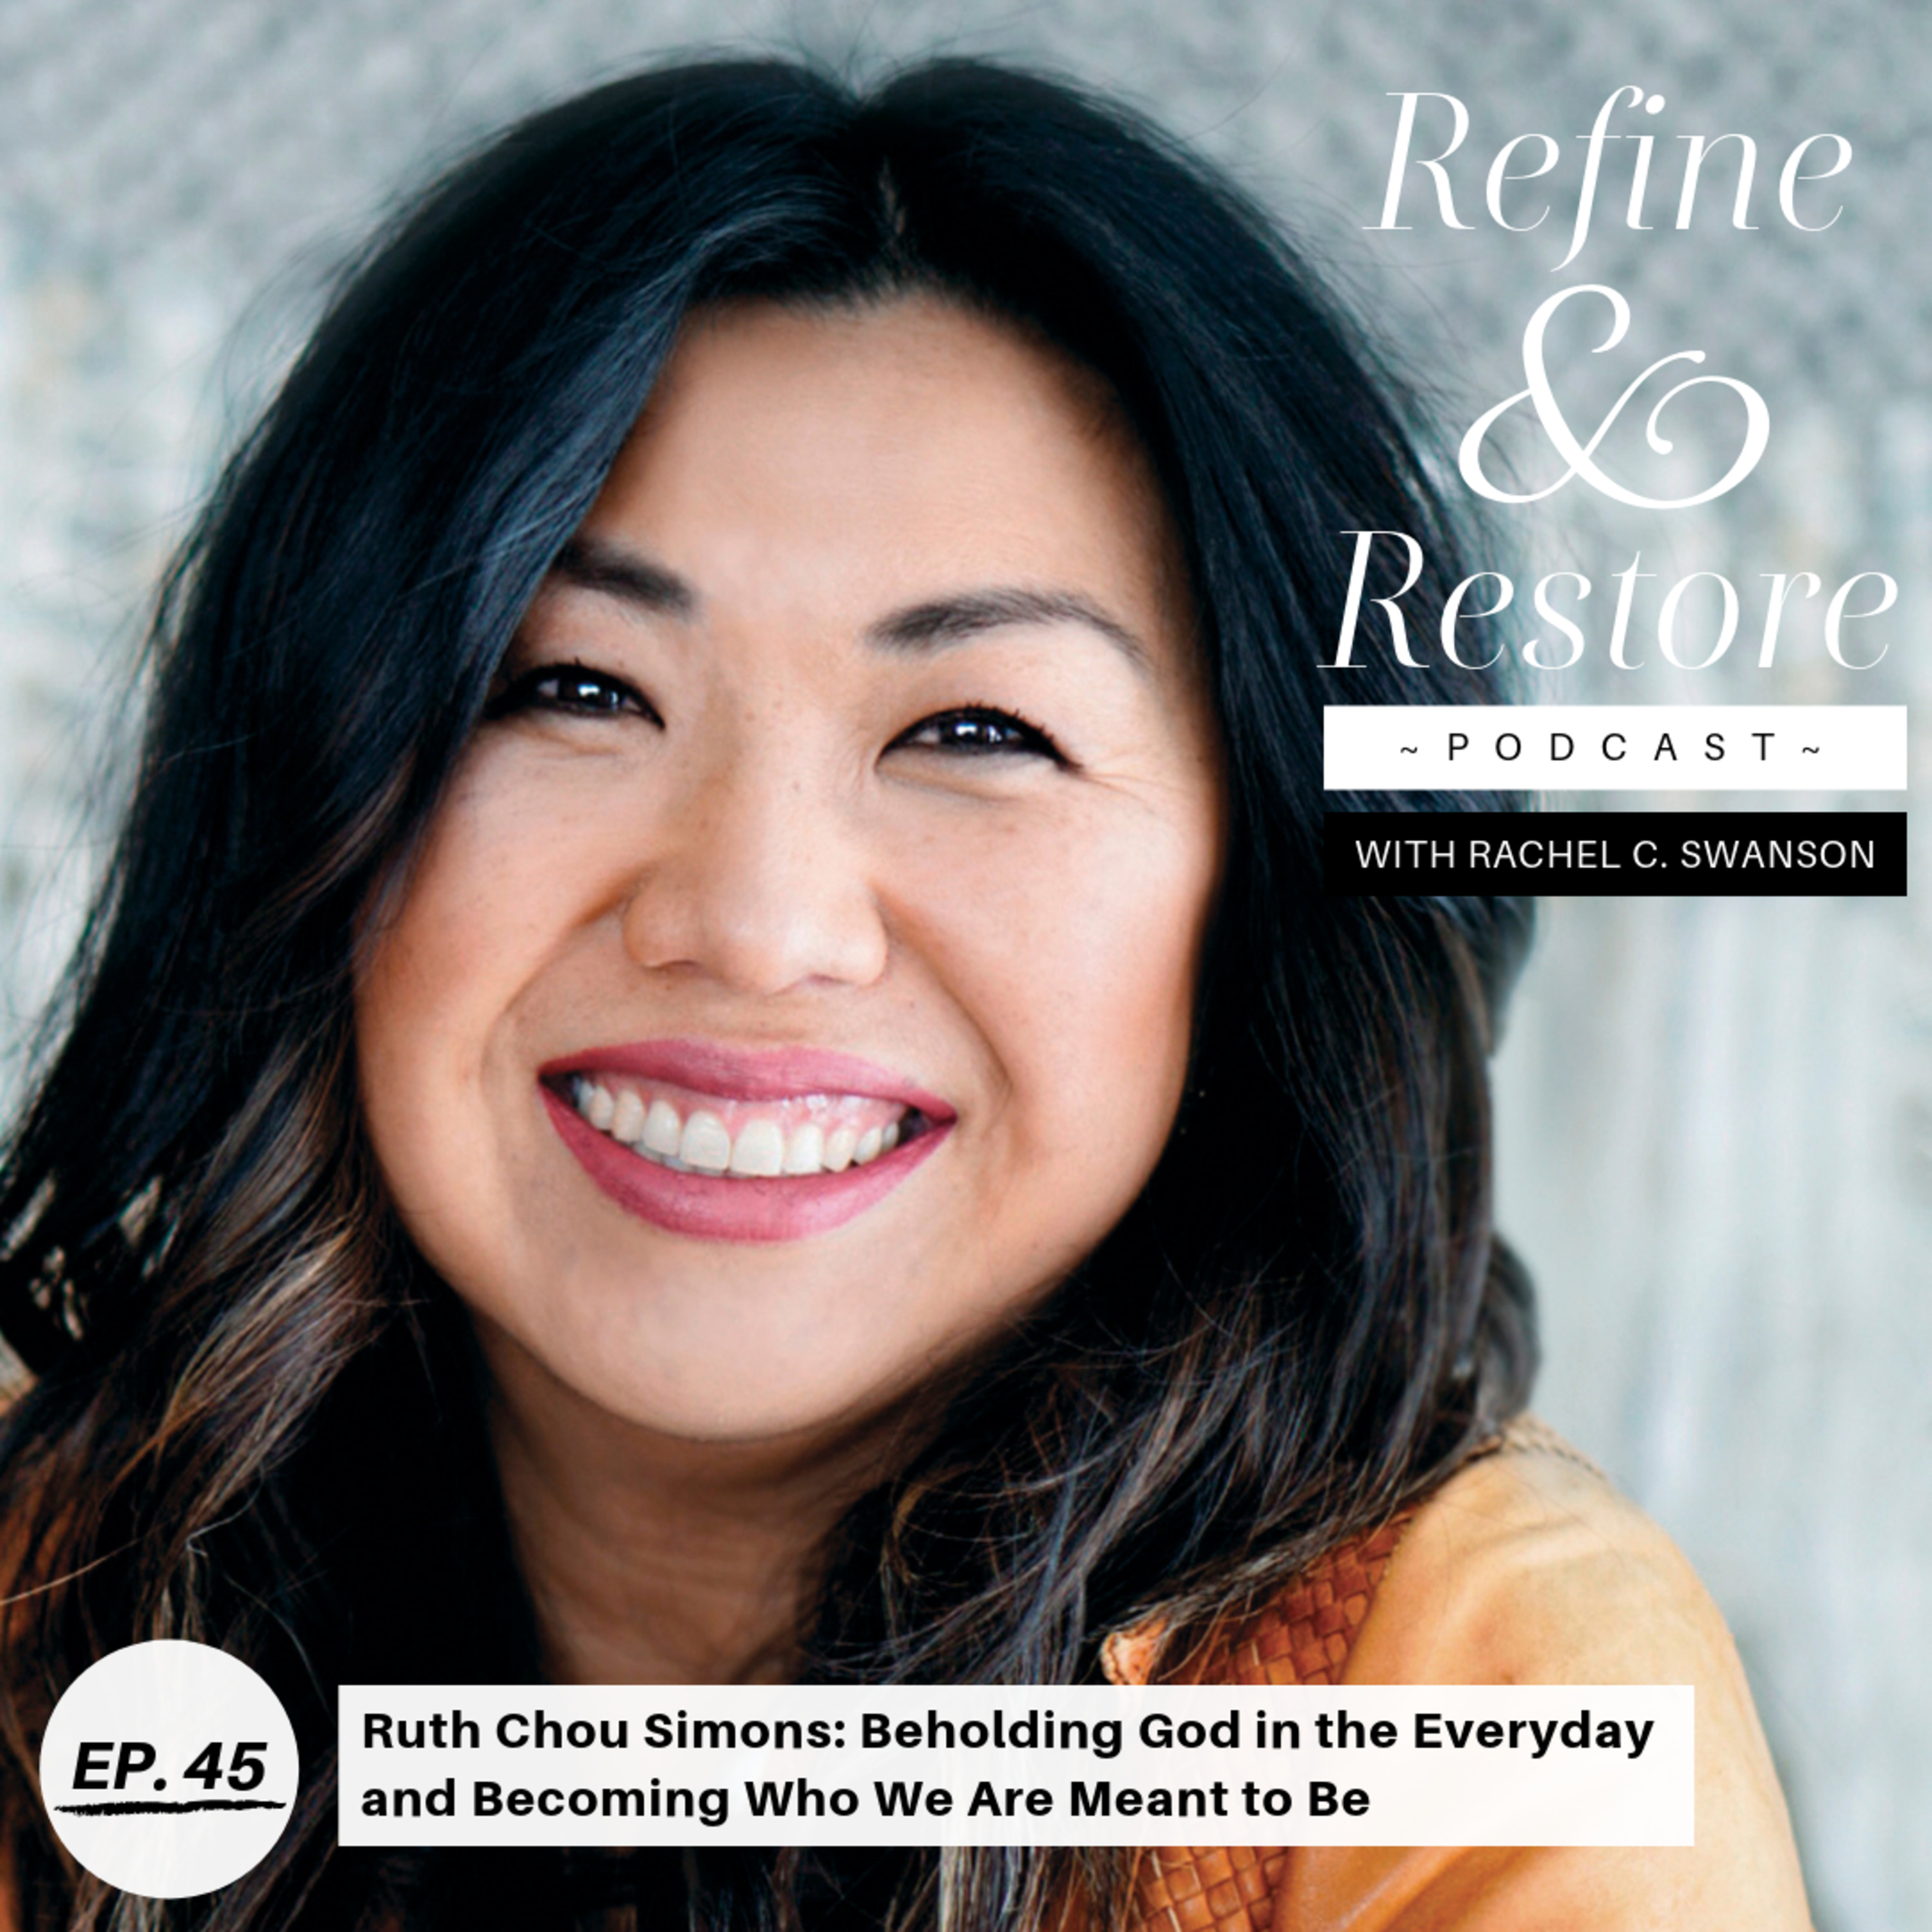 45: Ruth Chou Simons - Beholding God in the Everyday and Becoming Who We Are Meant to Be